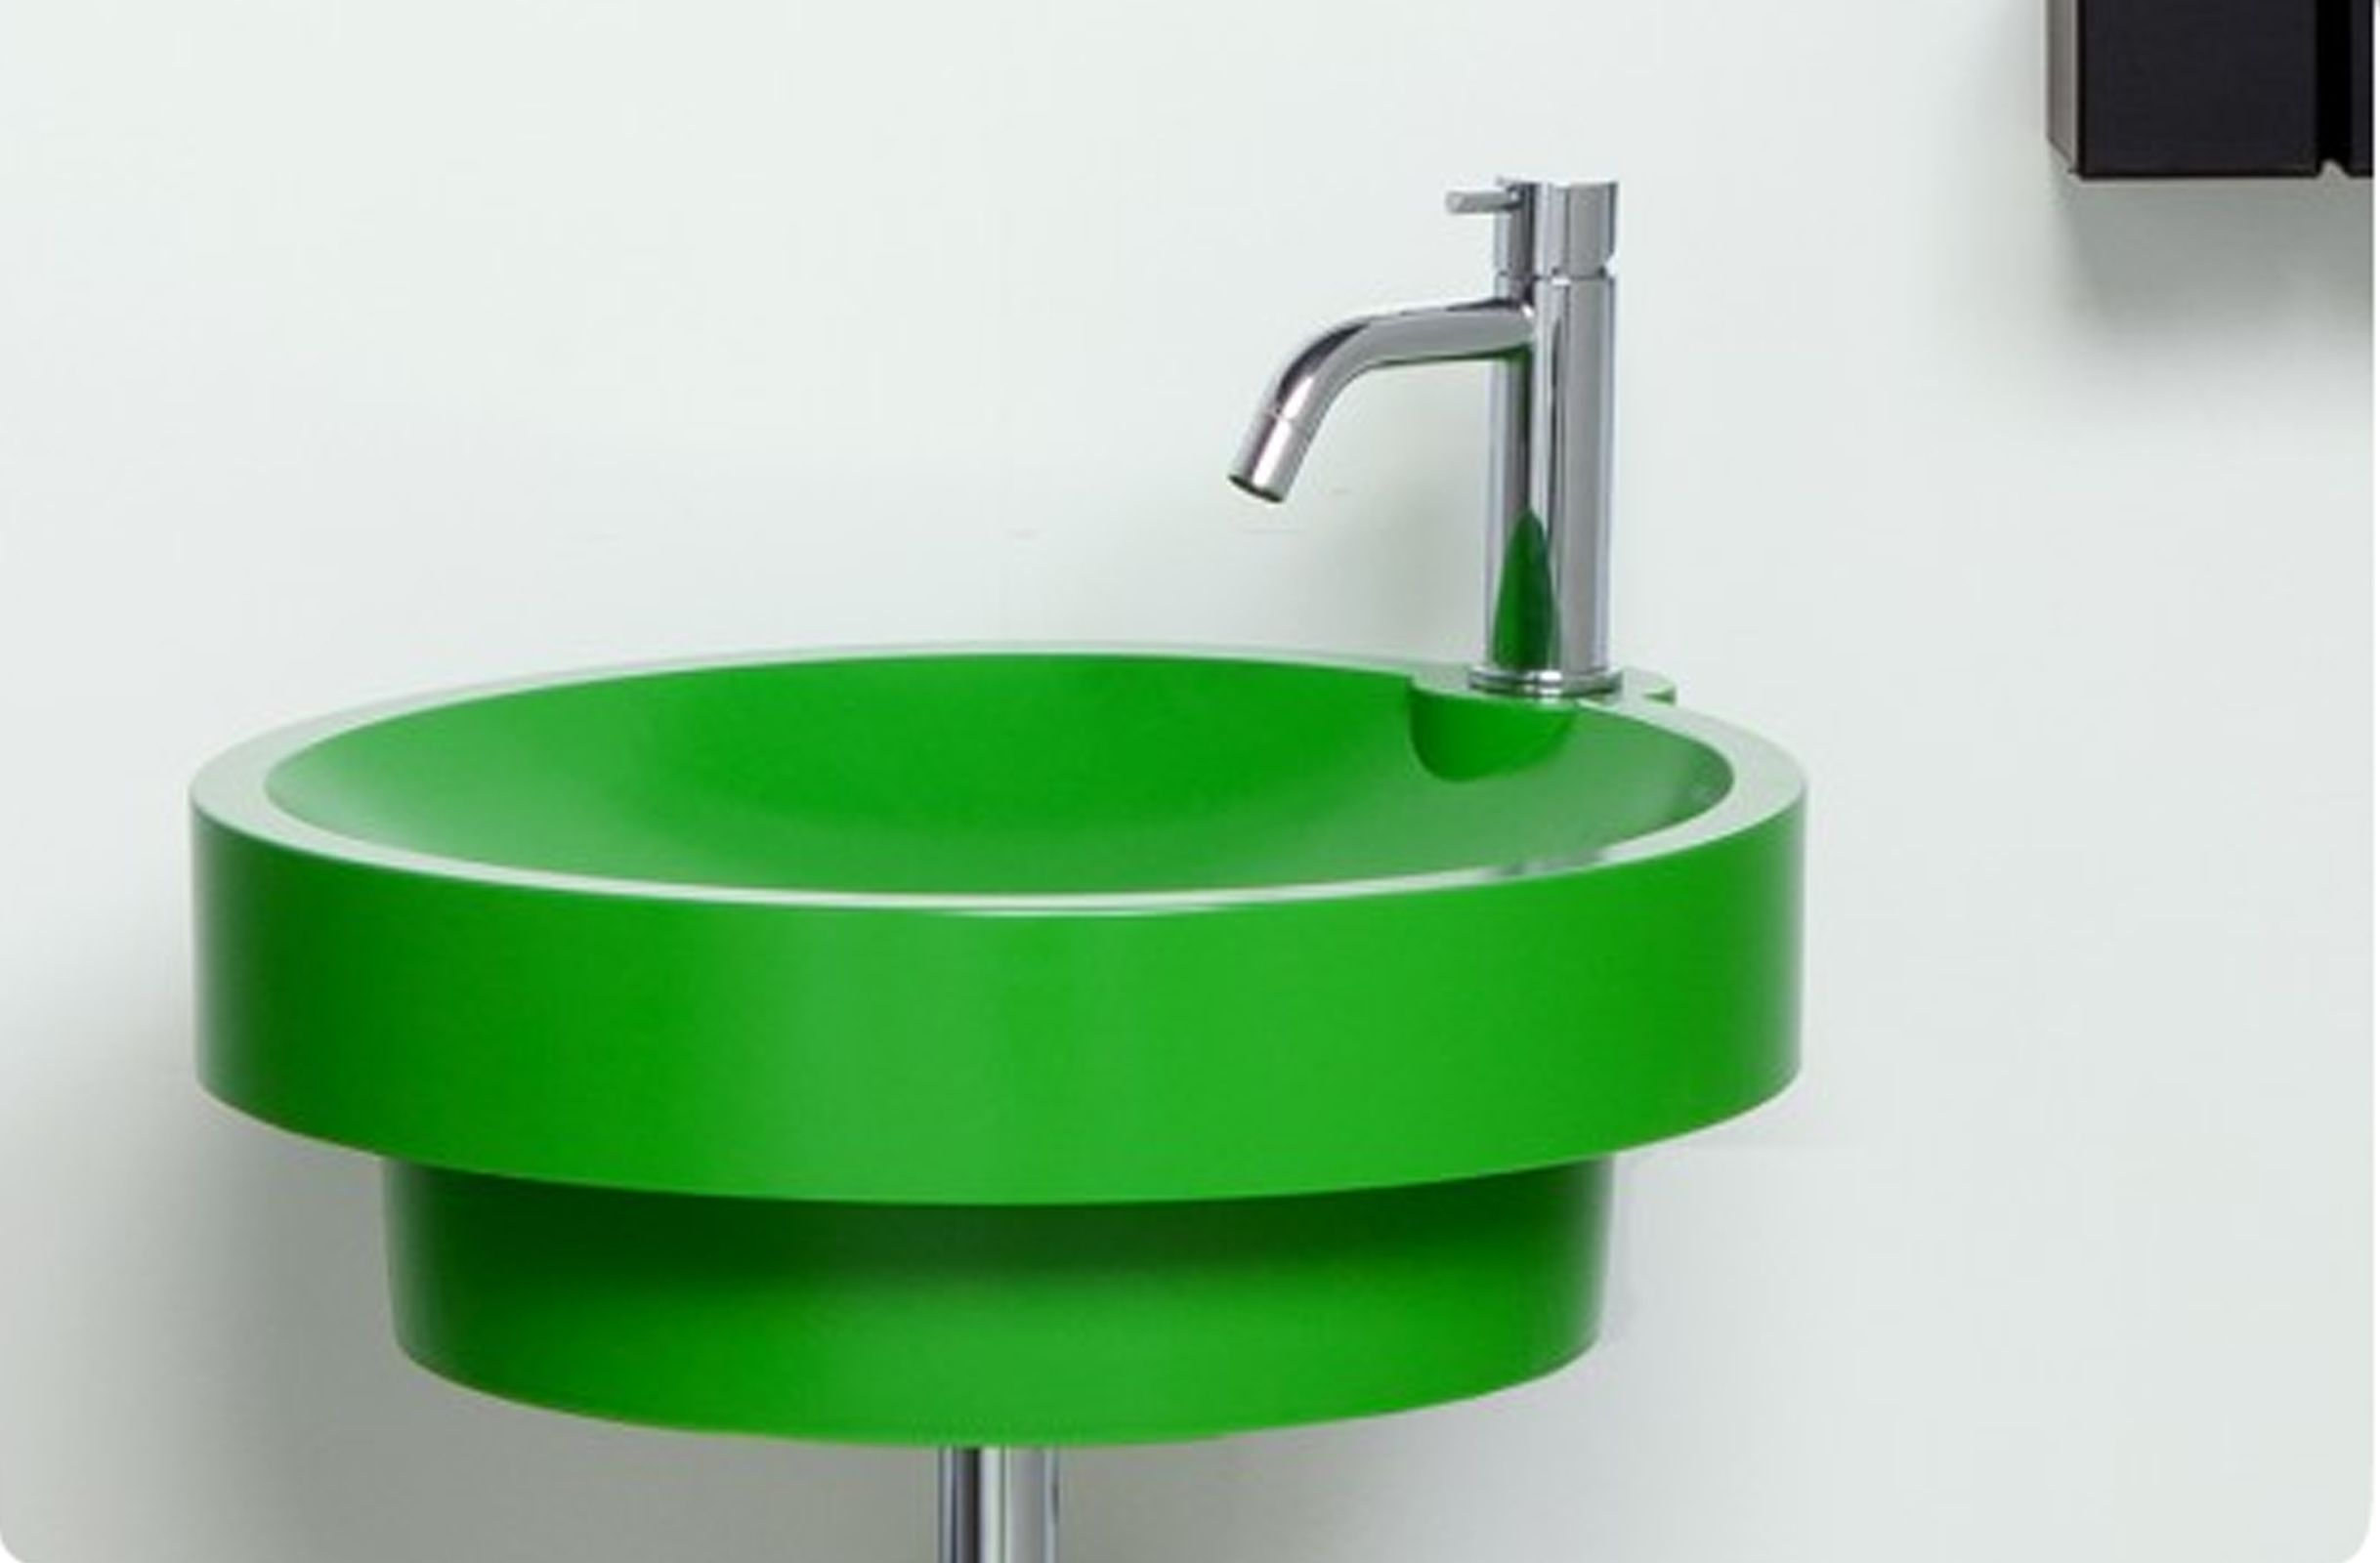 rubber colorful sink boing | Bathroom Sinks | Pinterest | Sinks and ...